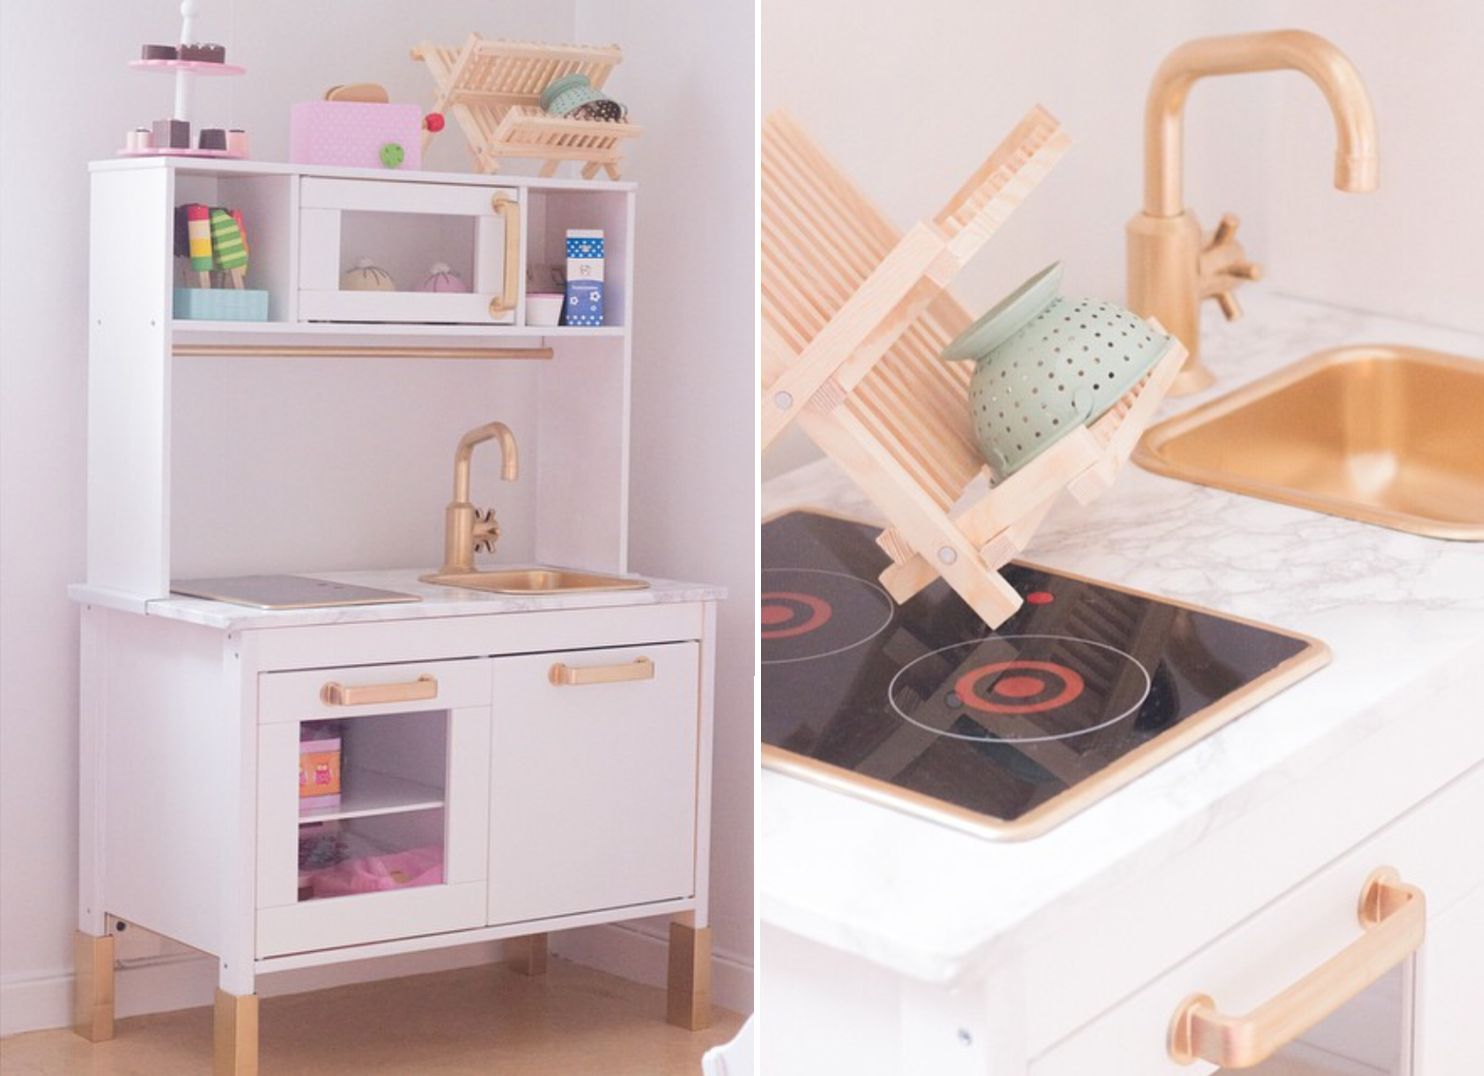 Hereu0027s The Second Play Kitchen Iu0027ve Made For Our Daughter! | Ikea Hack,  Daughters And Entertainment